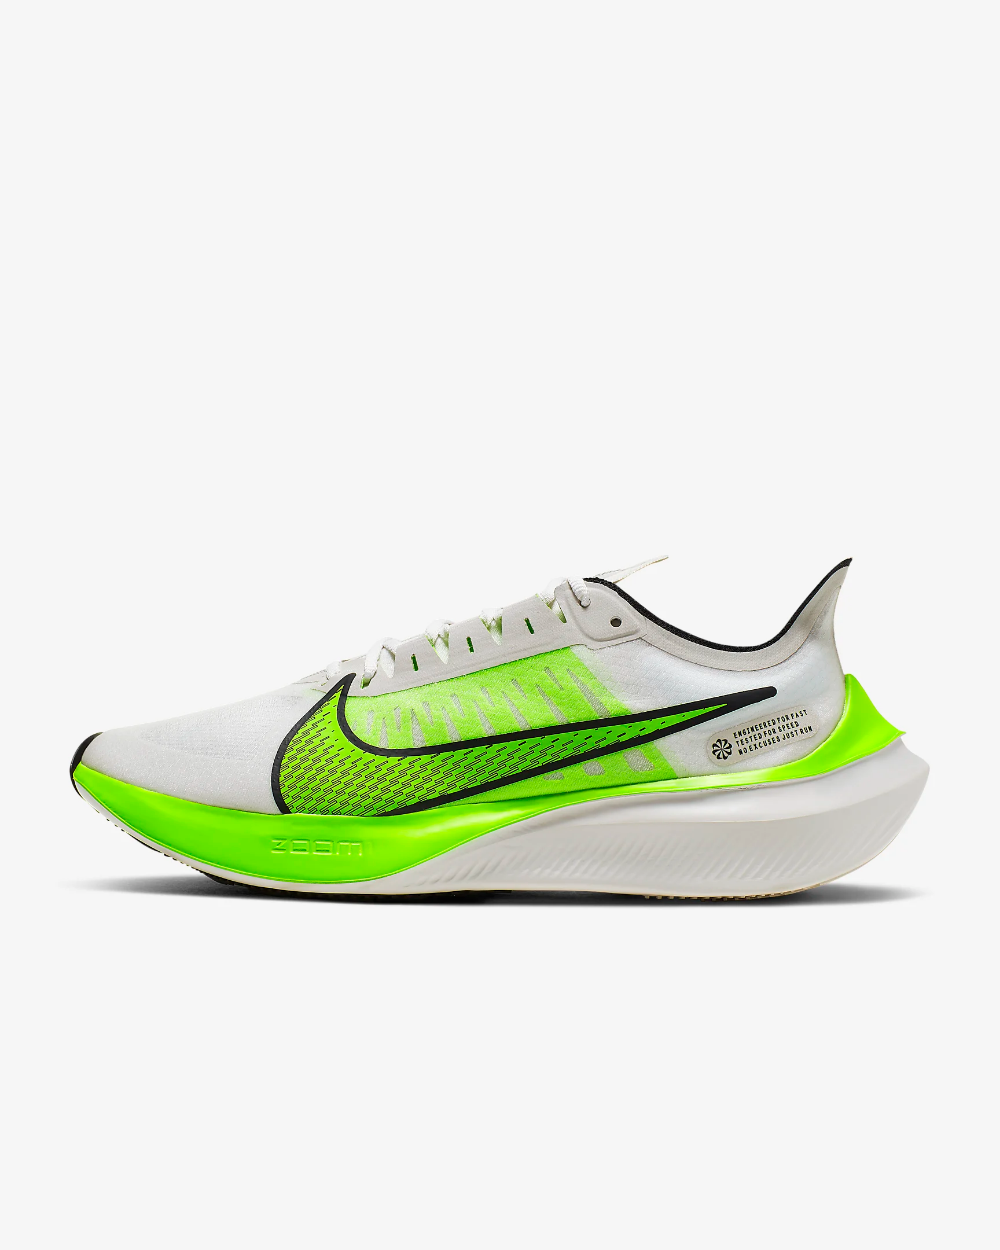 Obligar Reunión Falsedad  Nike Zoom Gravity Men's Running Shoe. Nike.com GB | Running shoes for men,  Running shoes nike, Running shoes